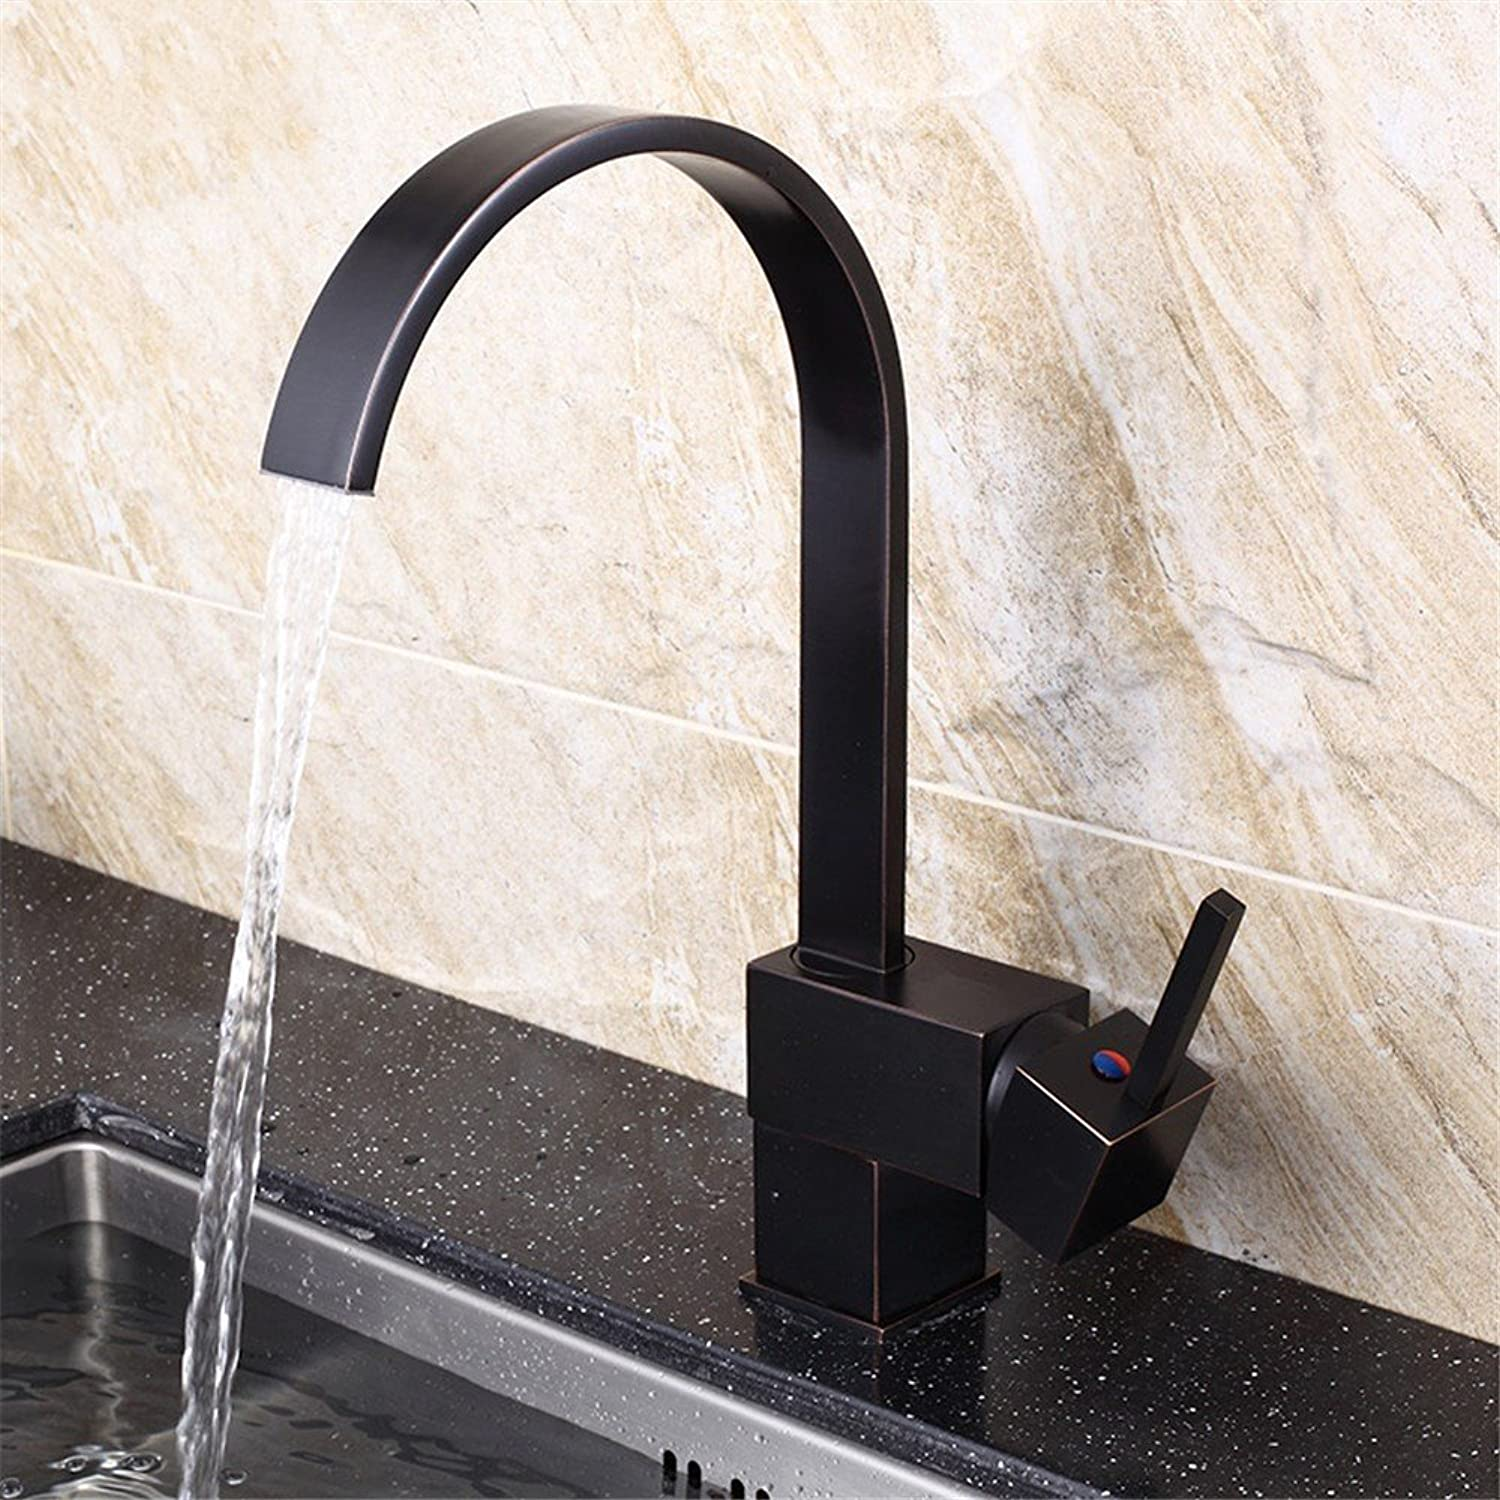 Lpophy Bathroom Sink Mixer Taps Faucet Bath Waterfall Cold and Hot Water Tap for Washroom Bathroom and Kitchen Black Retro Universal redating Copper Hot and Cold B